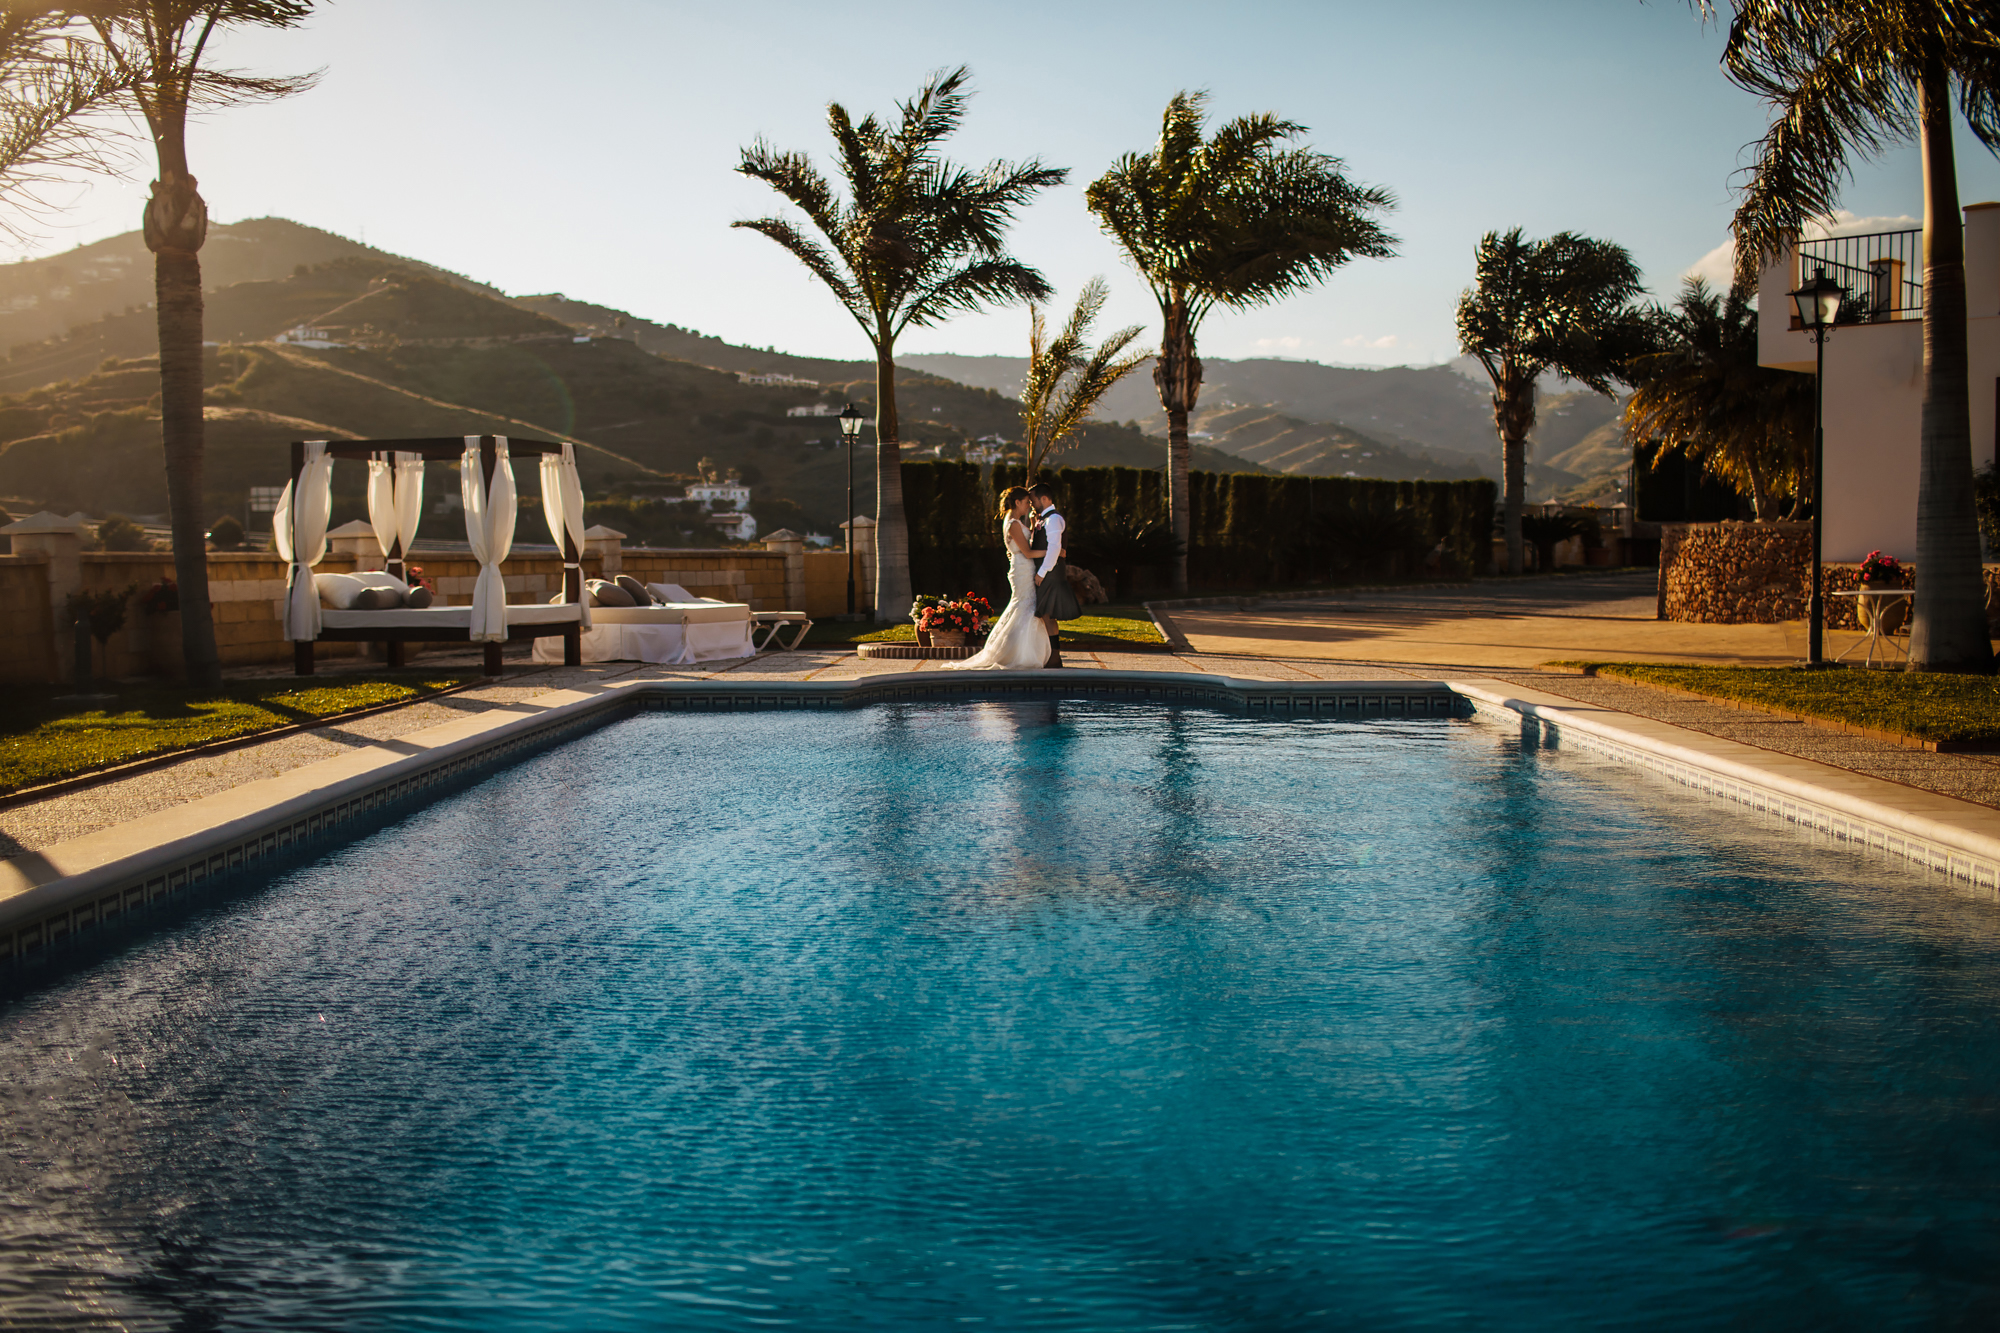 Swimming pool portrait at Cortijo Maria Luisa Nerja Spain